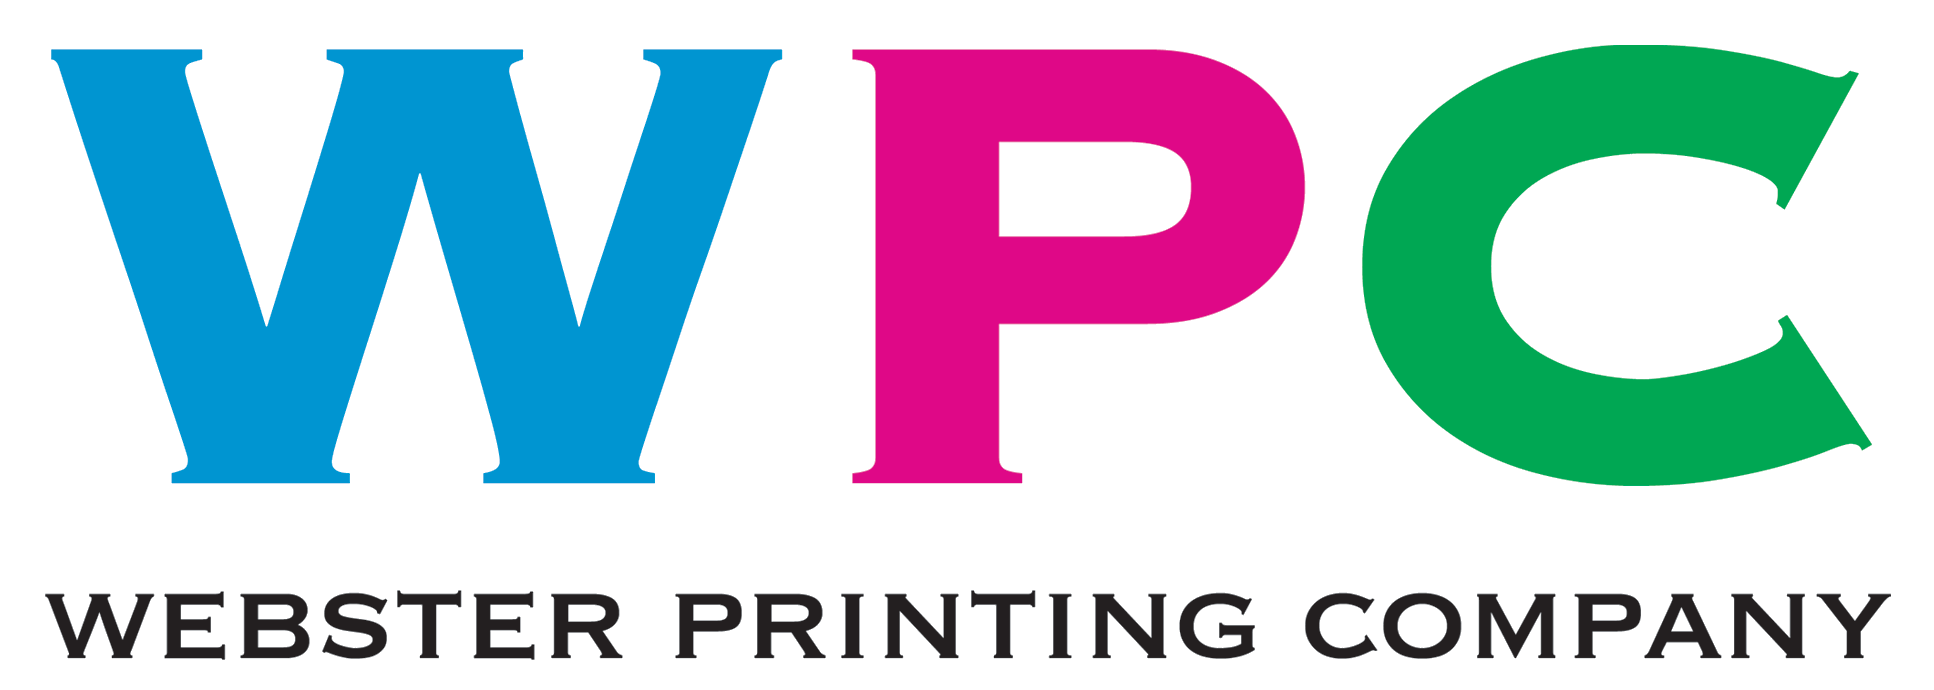 Webster Printing Company